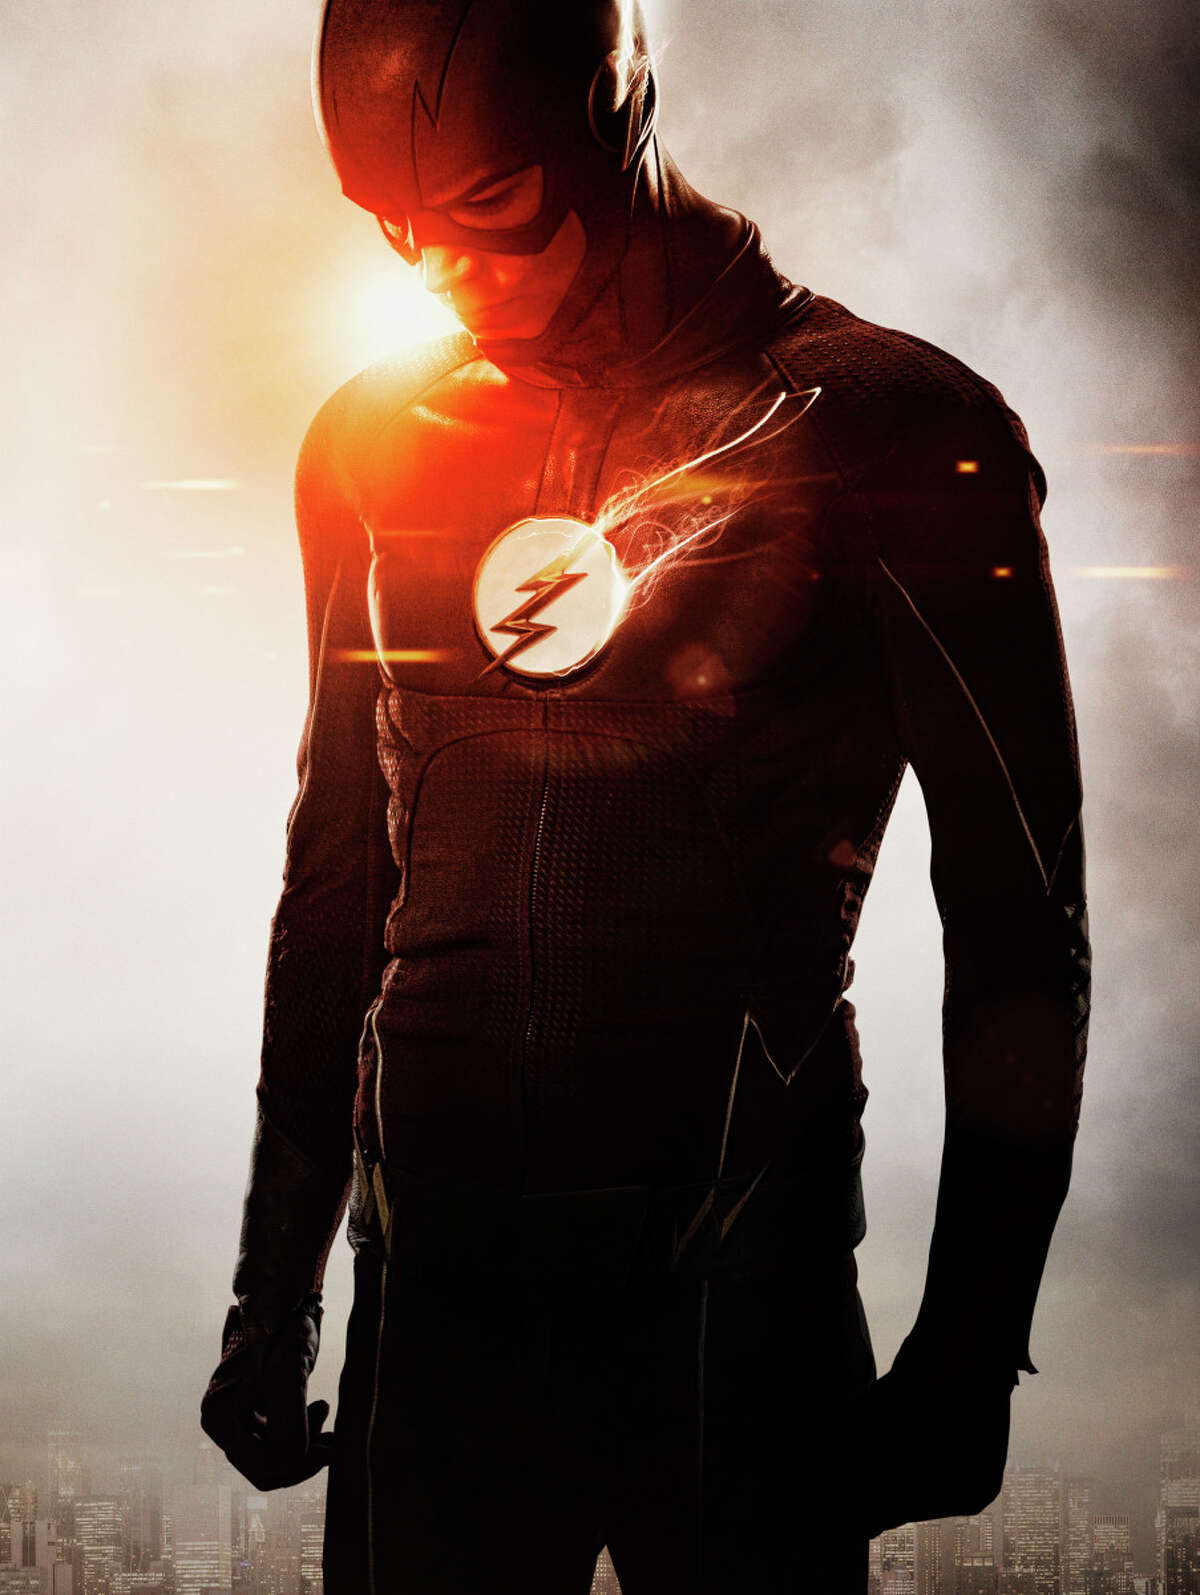 THE FLASH: Tuesday, October 9 on The CW The Flash gets a new suit this season!